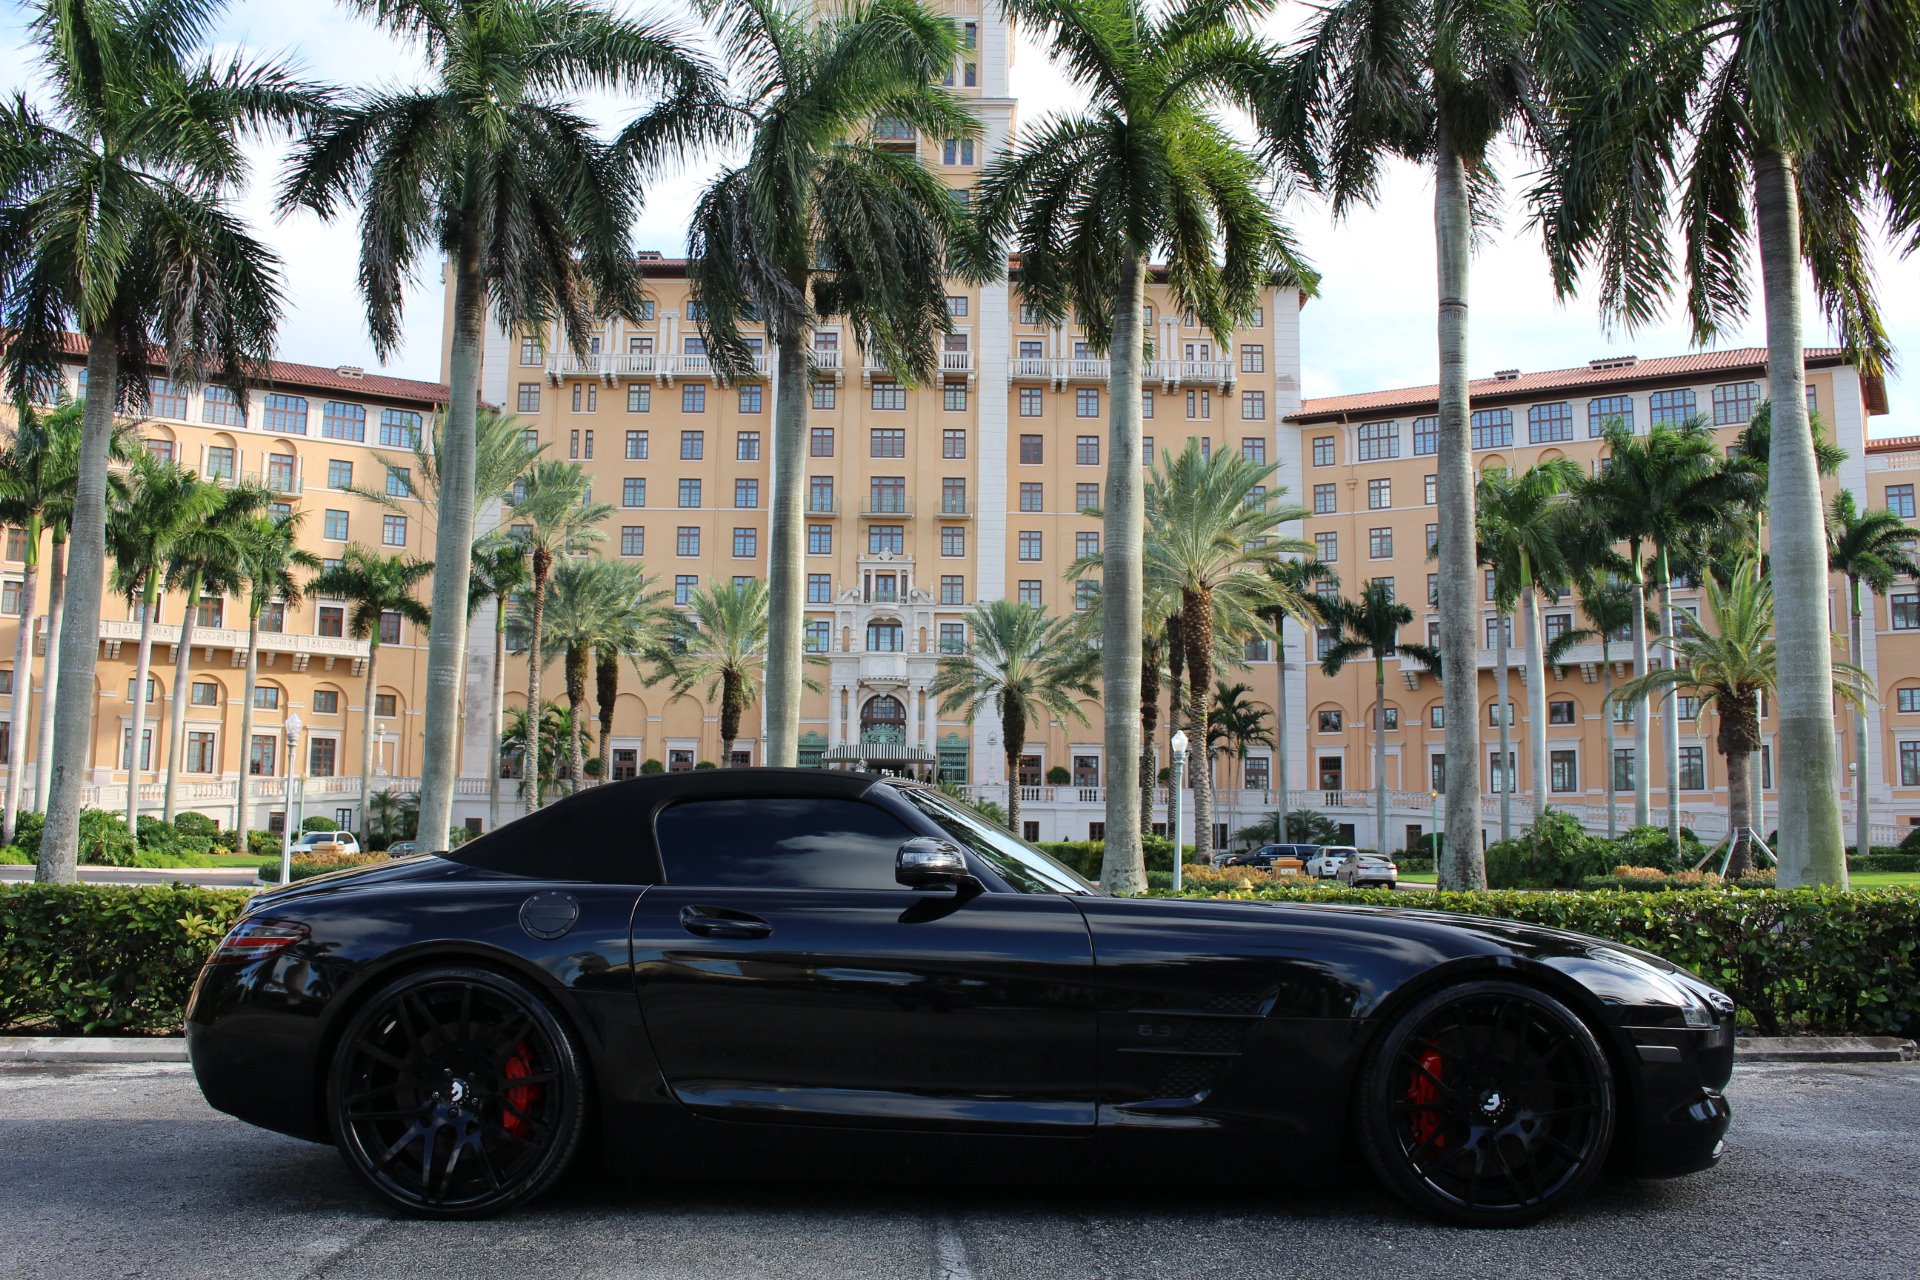 Used 2012 Mercedes-Benz SLS AMG for sale Sold at The Gables Sports Cars in Miami FL 33146 2